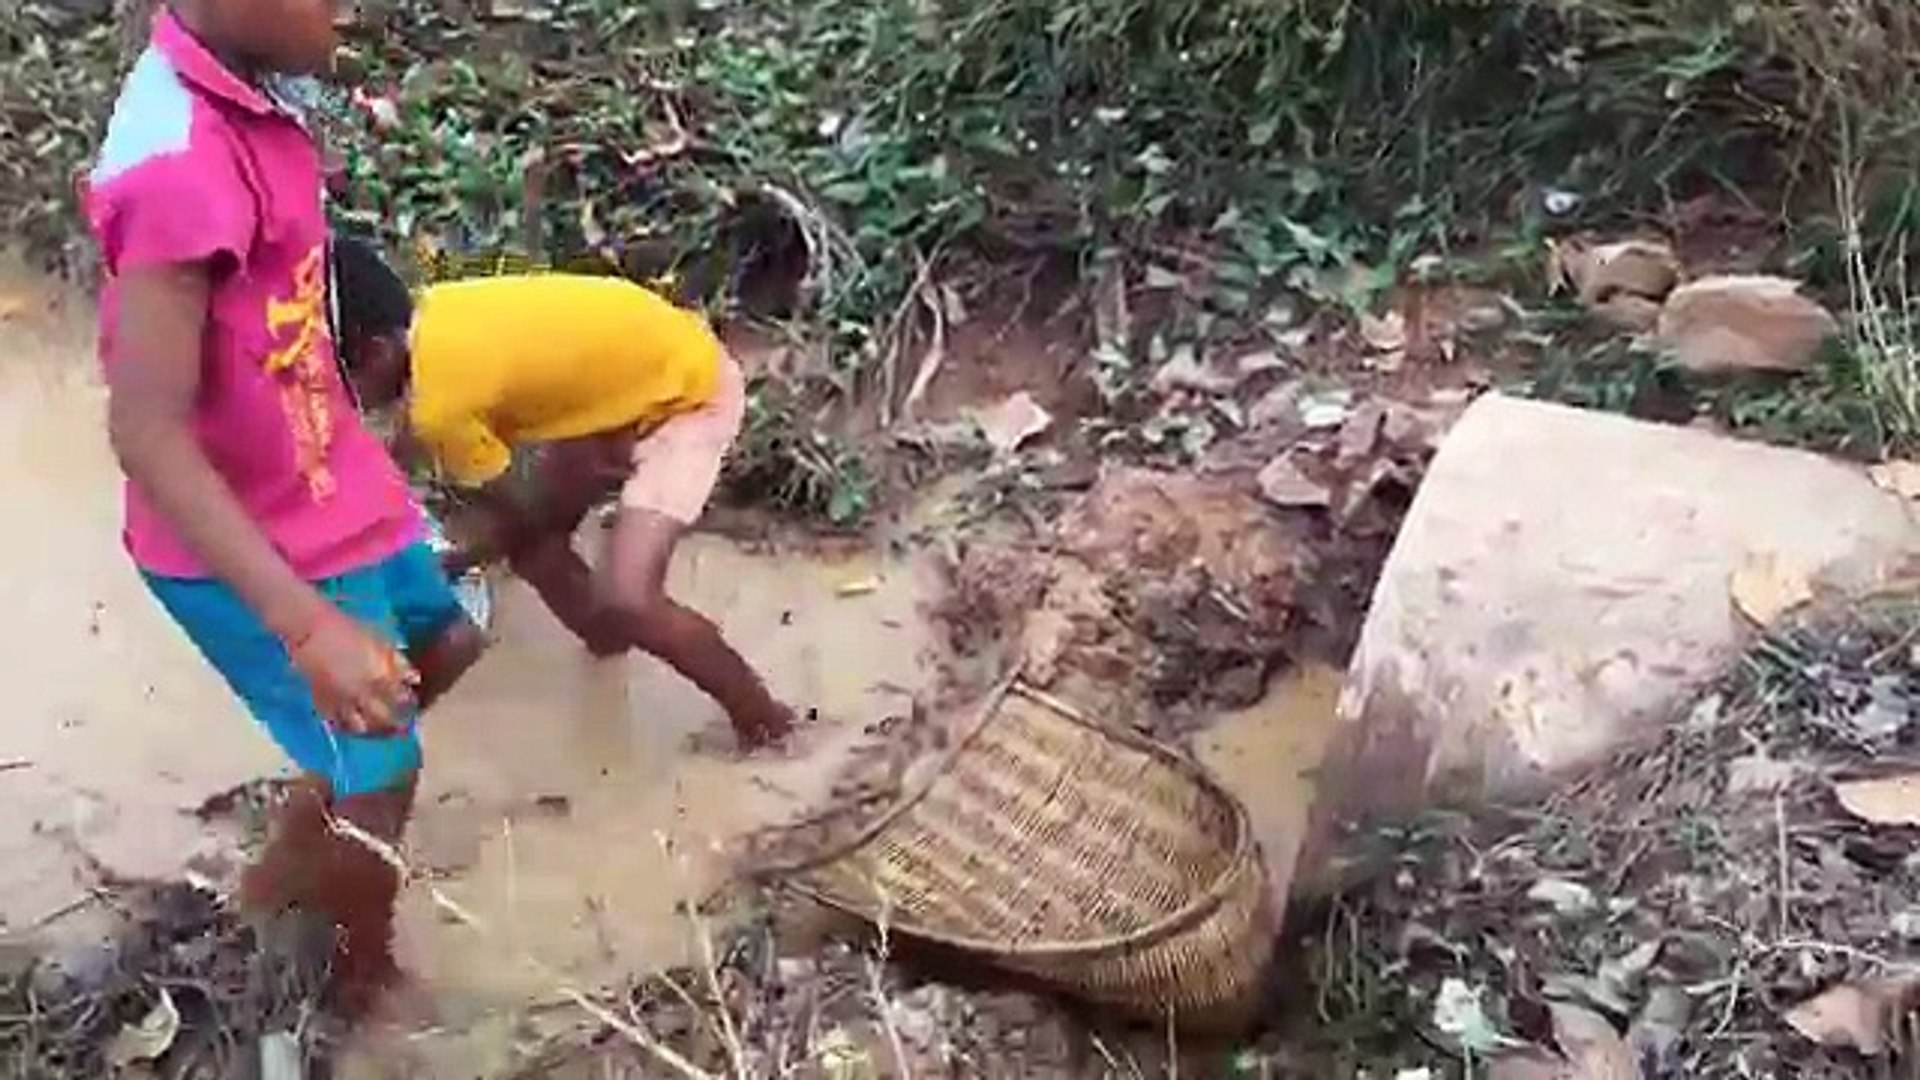 Amazing Fishing - Two Boys Catch A Lot Of Fish With Bare Hand - How To Catch Fish In Cambodia